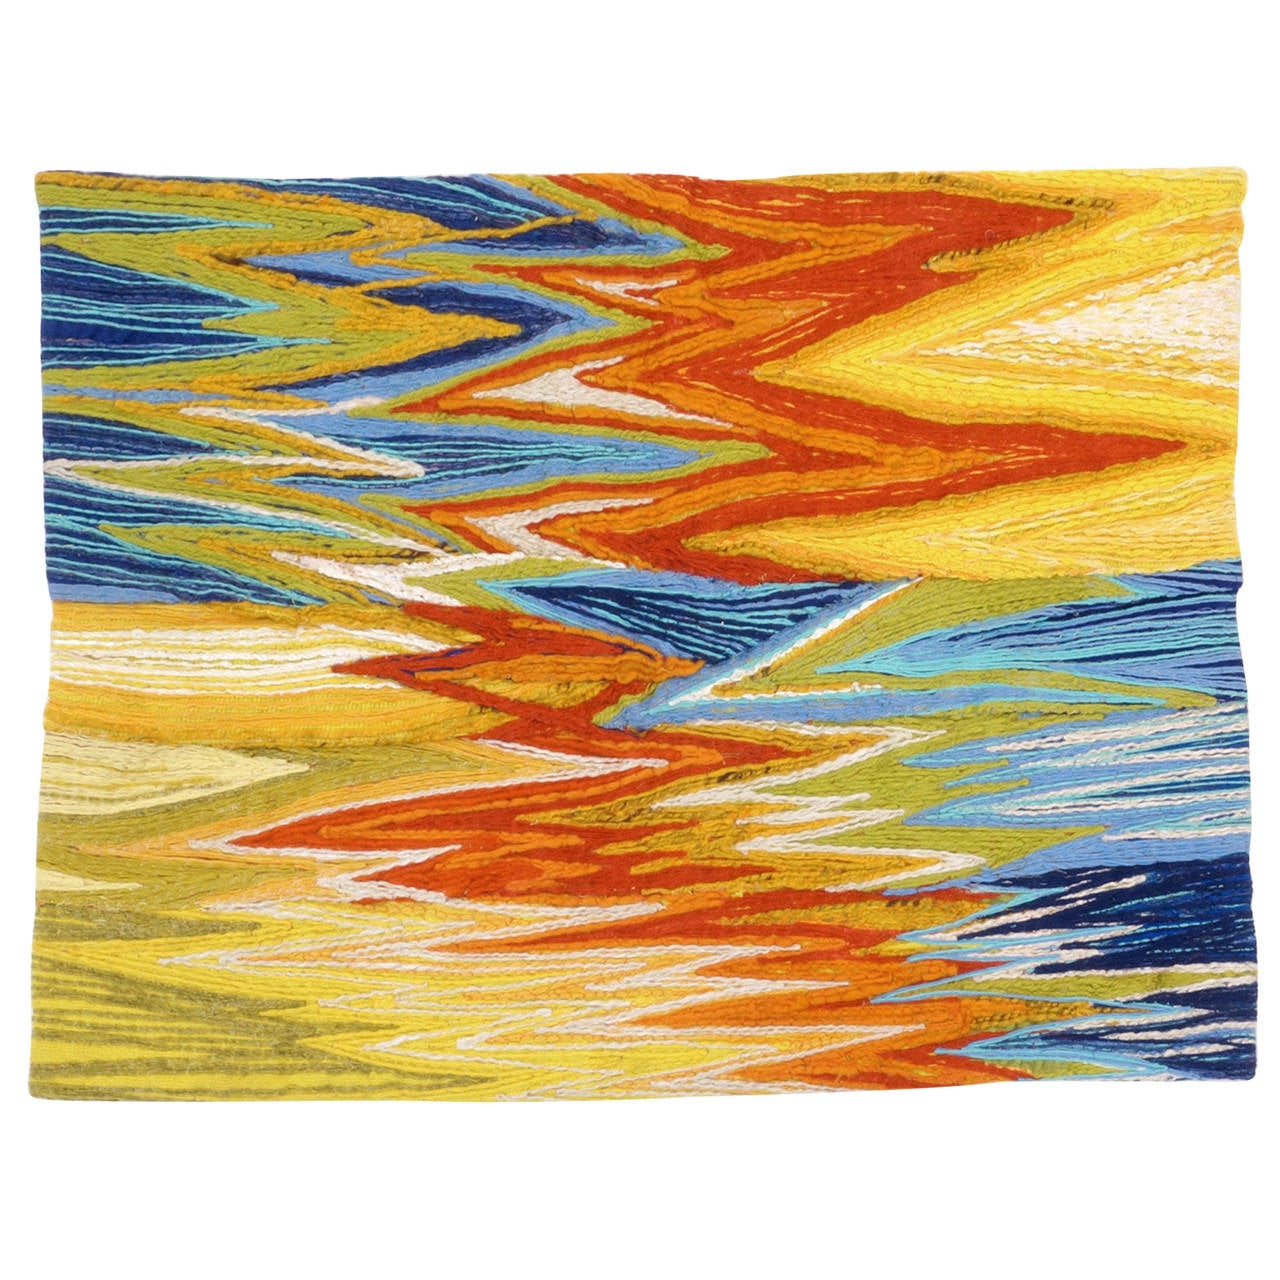 Janet Kuemmerlein Wall Hanging For Sale at 1stdibs